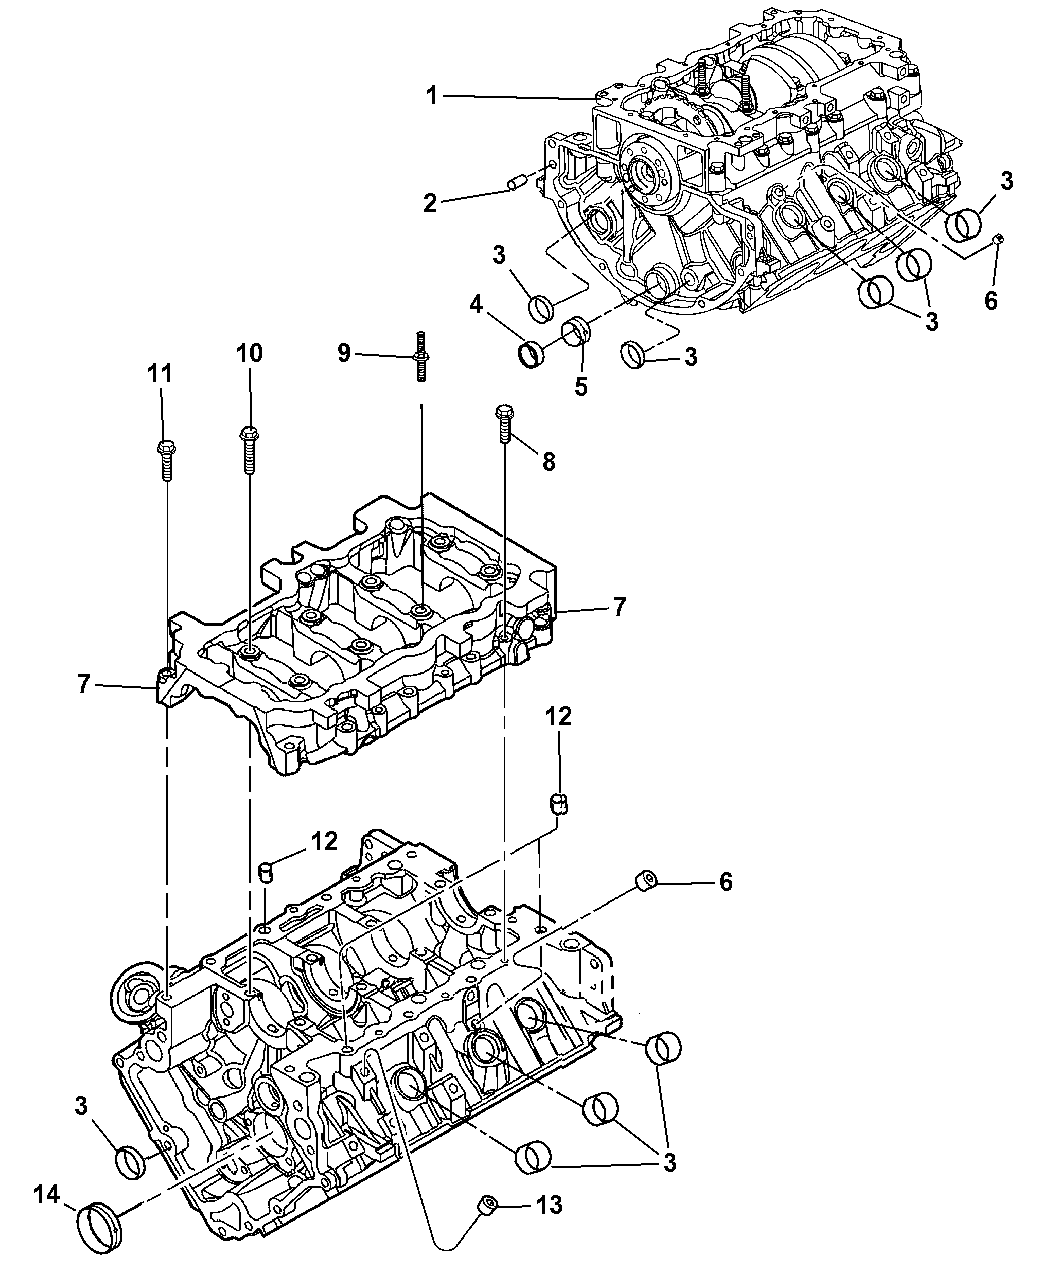 2011 Dodge Nitro Engine Cylinder Block Hardware Diagram Thumbnail 1